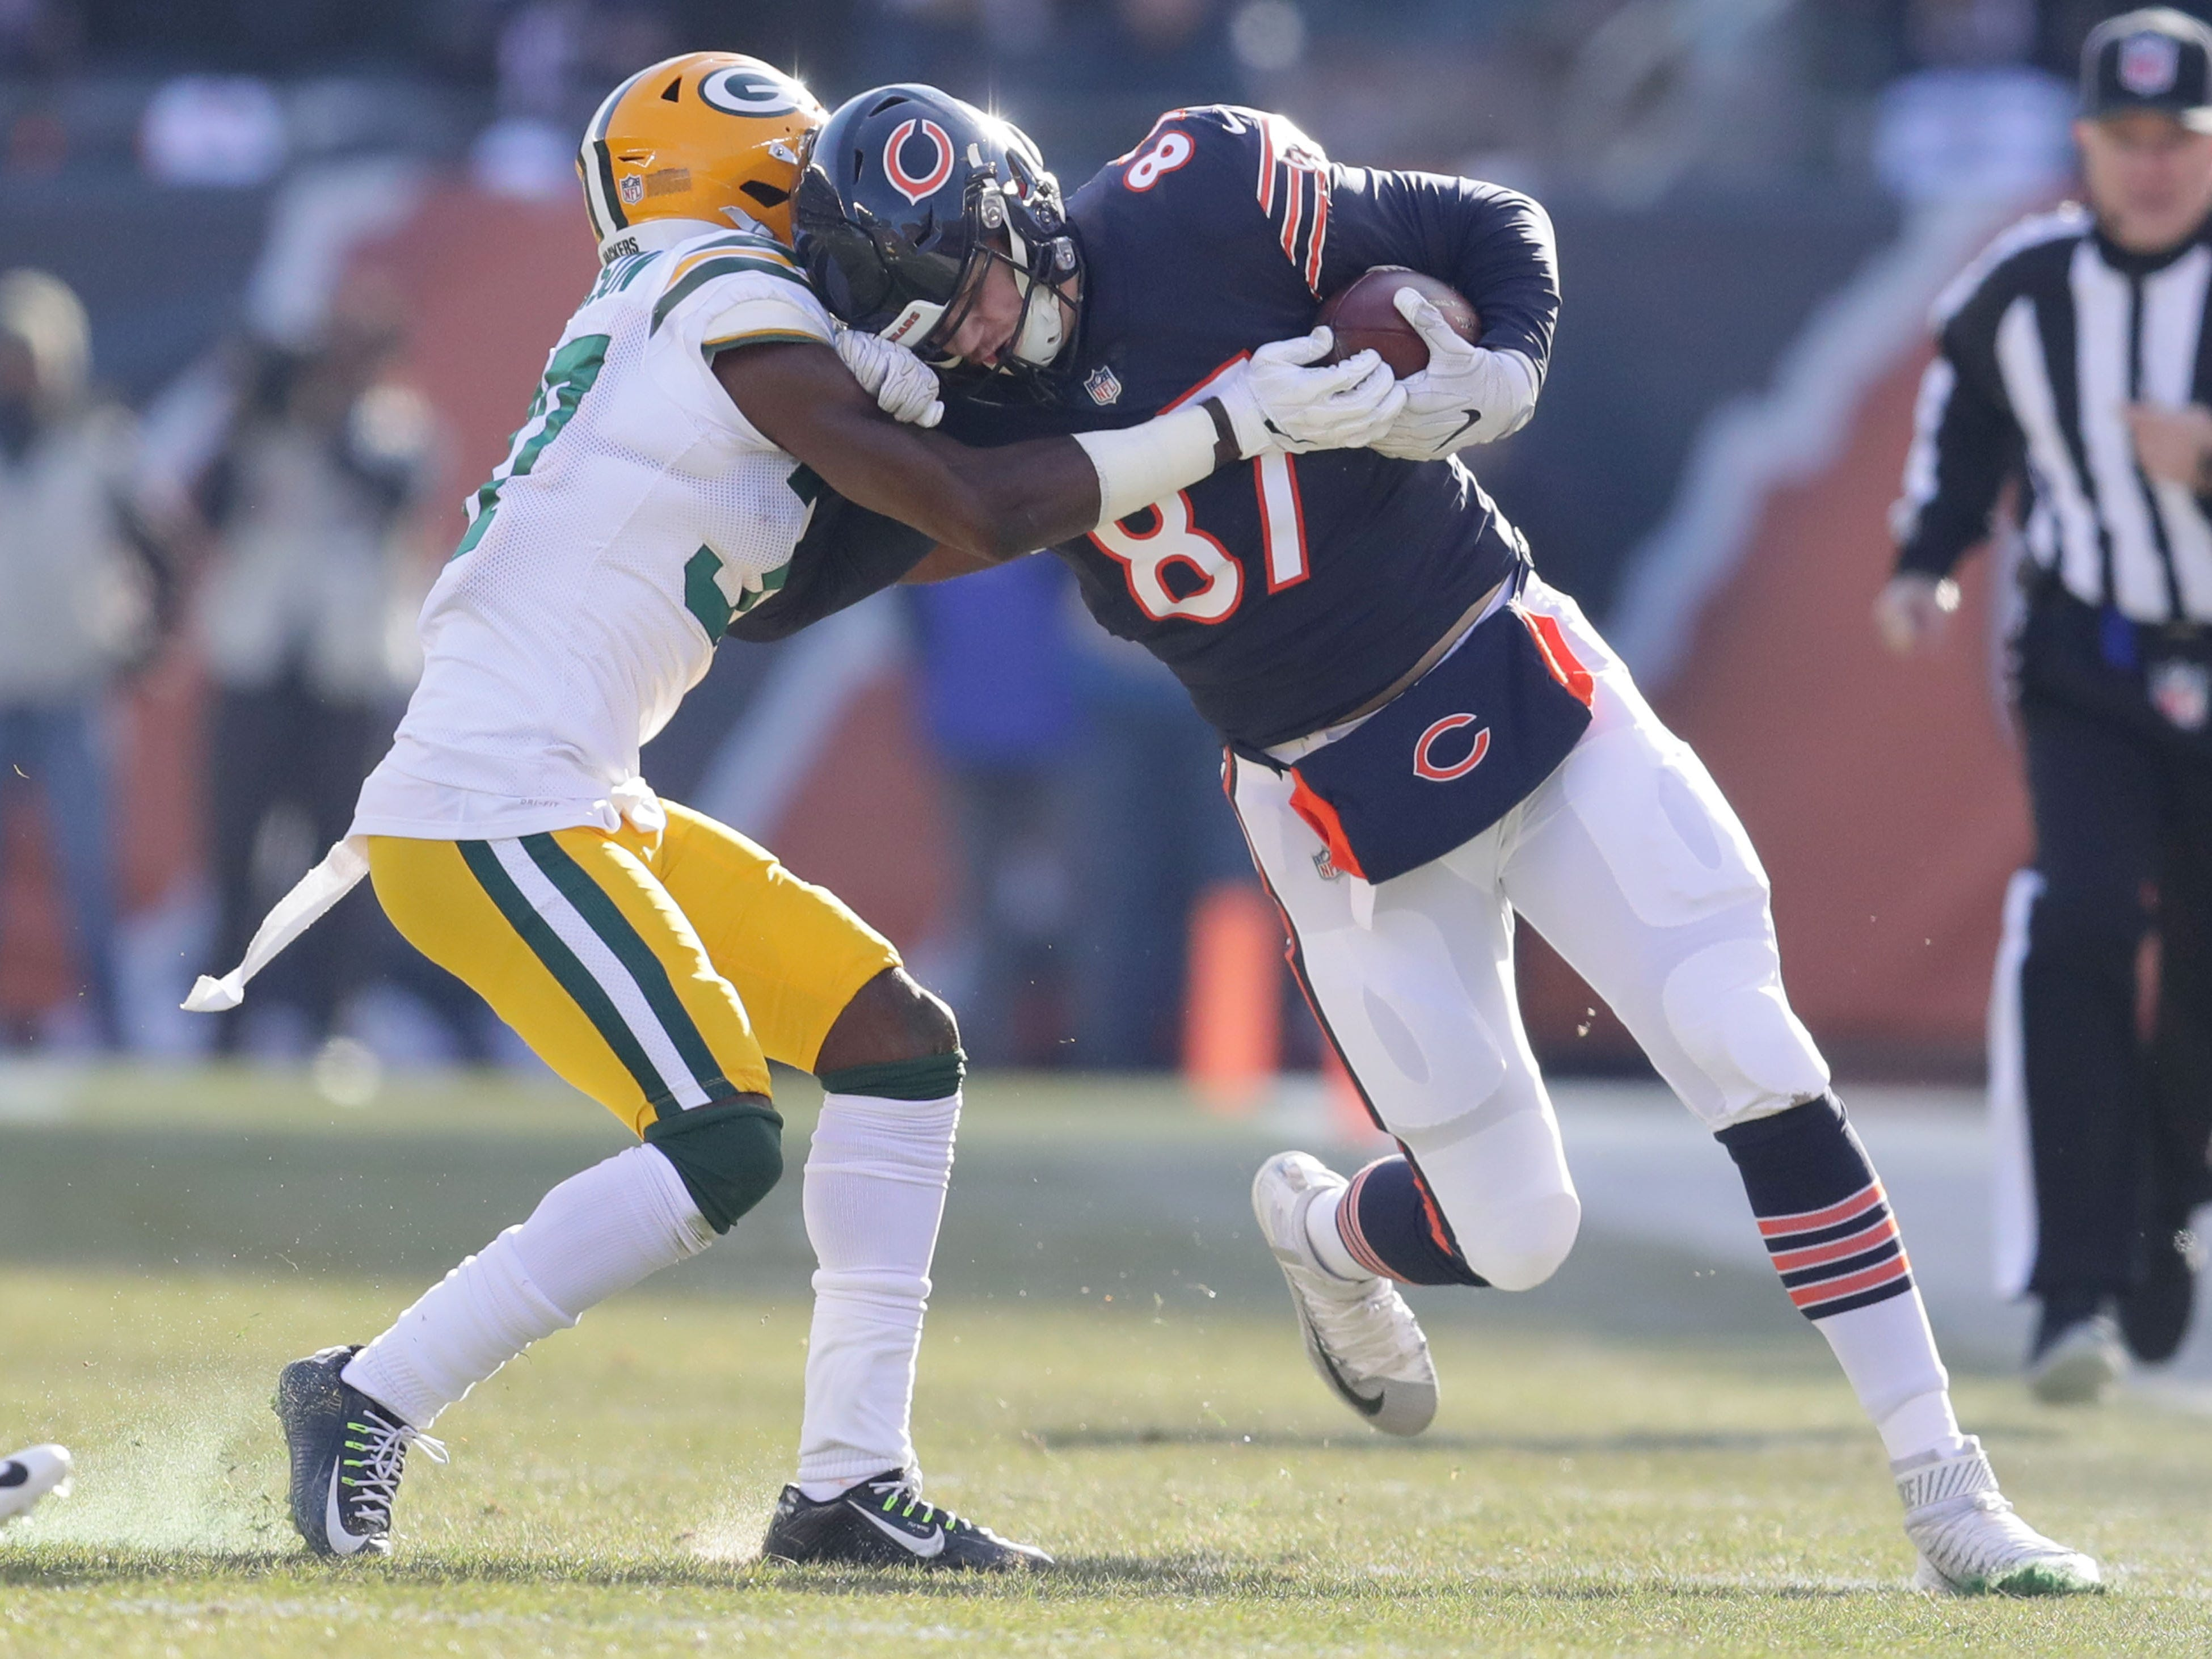 Green Bay Packers' Josh Jackson tackles Chicago Bears' Adam Shaheen during the 1st half of the Green Bay Packers game against the Chicago Bears at Soldier Field Sunday, Dec. 16, 2018, in Chicago. Photo by Mike De Sisti / The Milwaukee Journal Sentinel